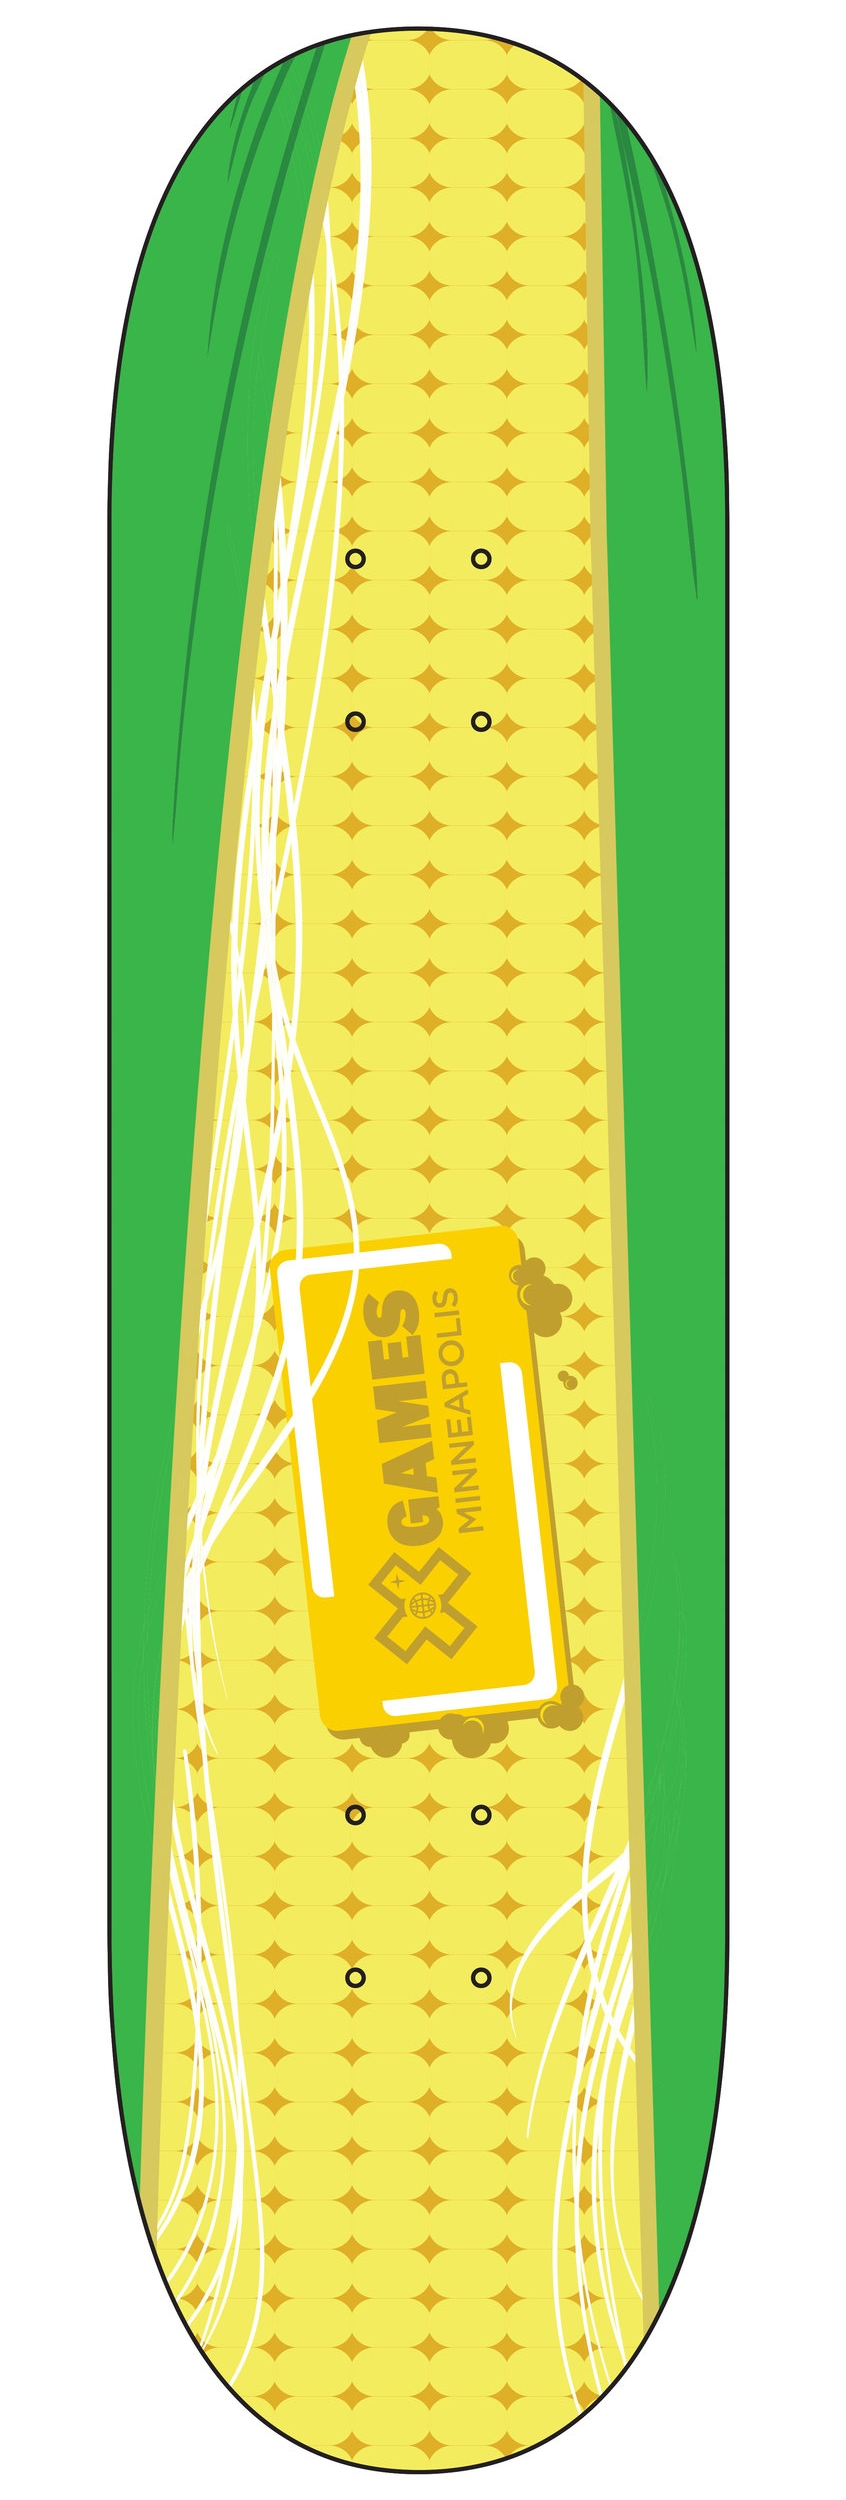 Unused Skateboard design for the X-Games